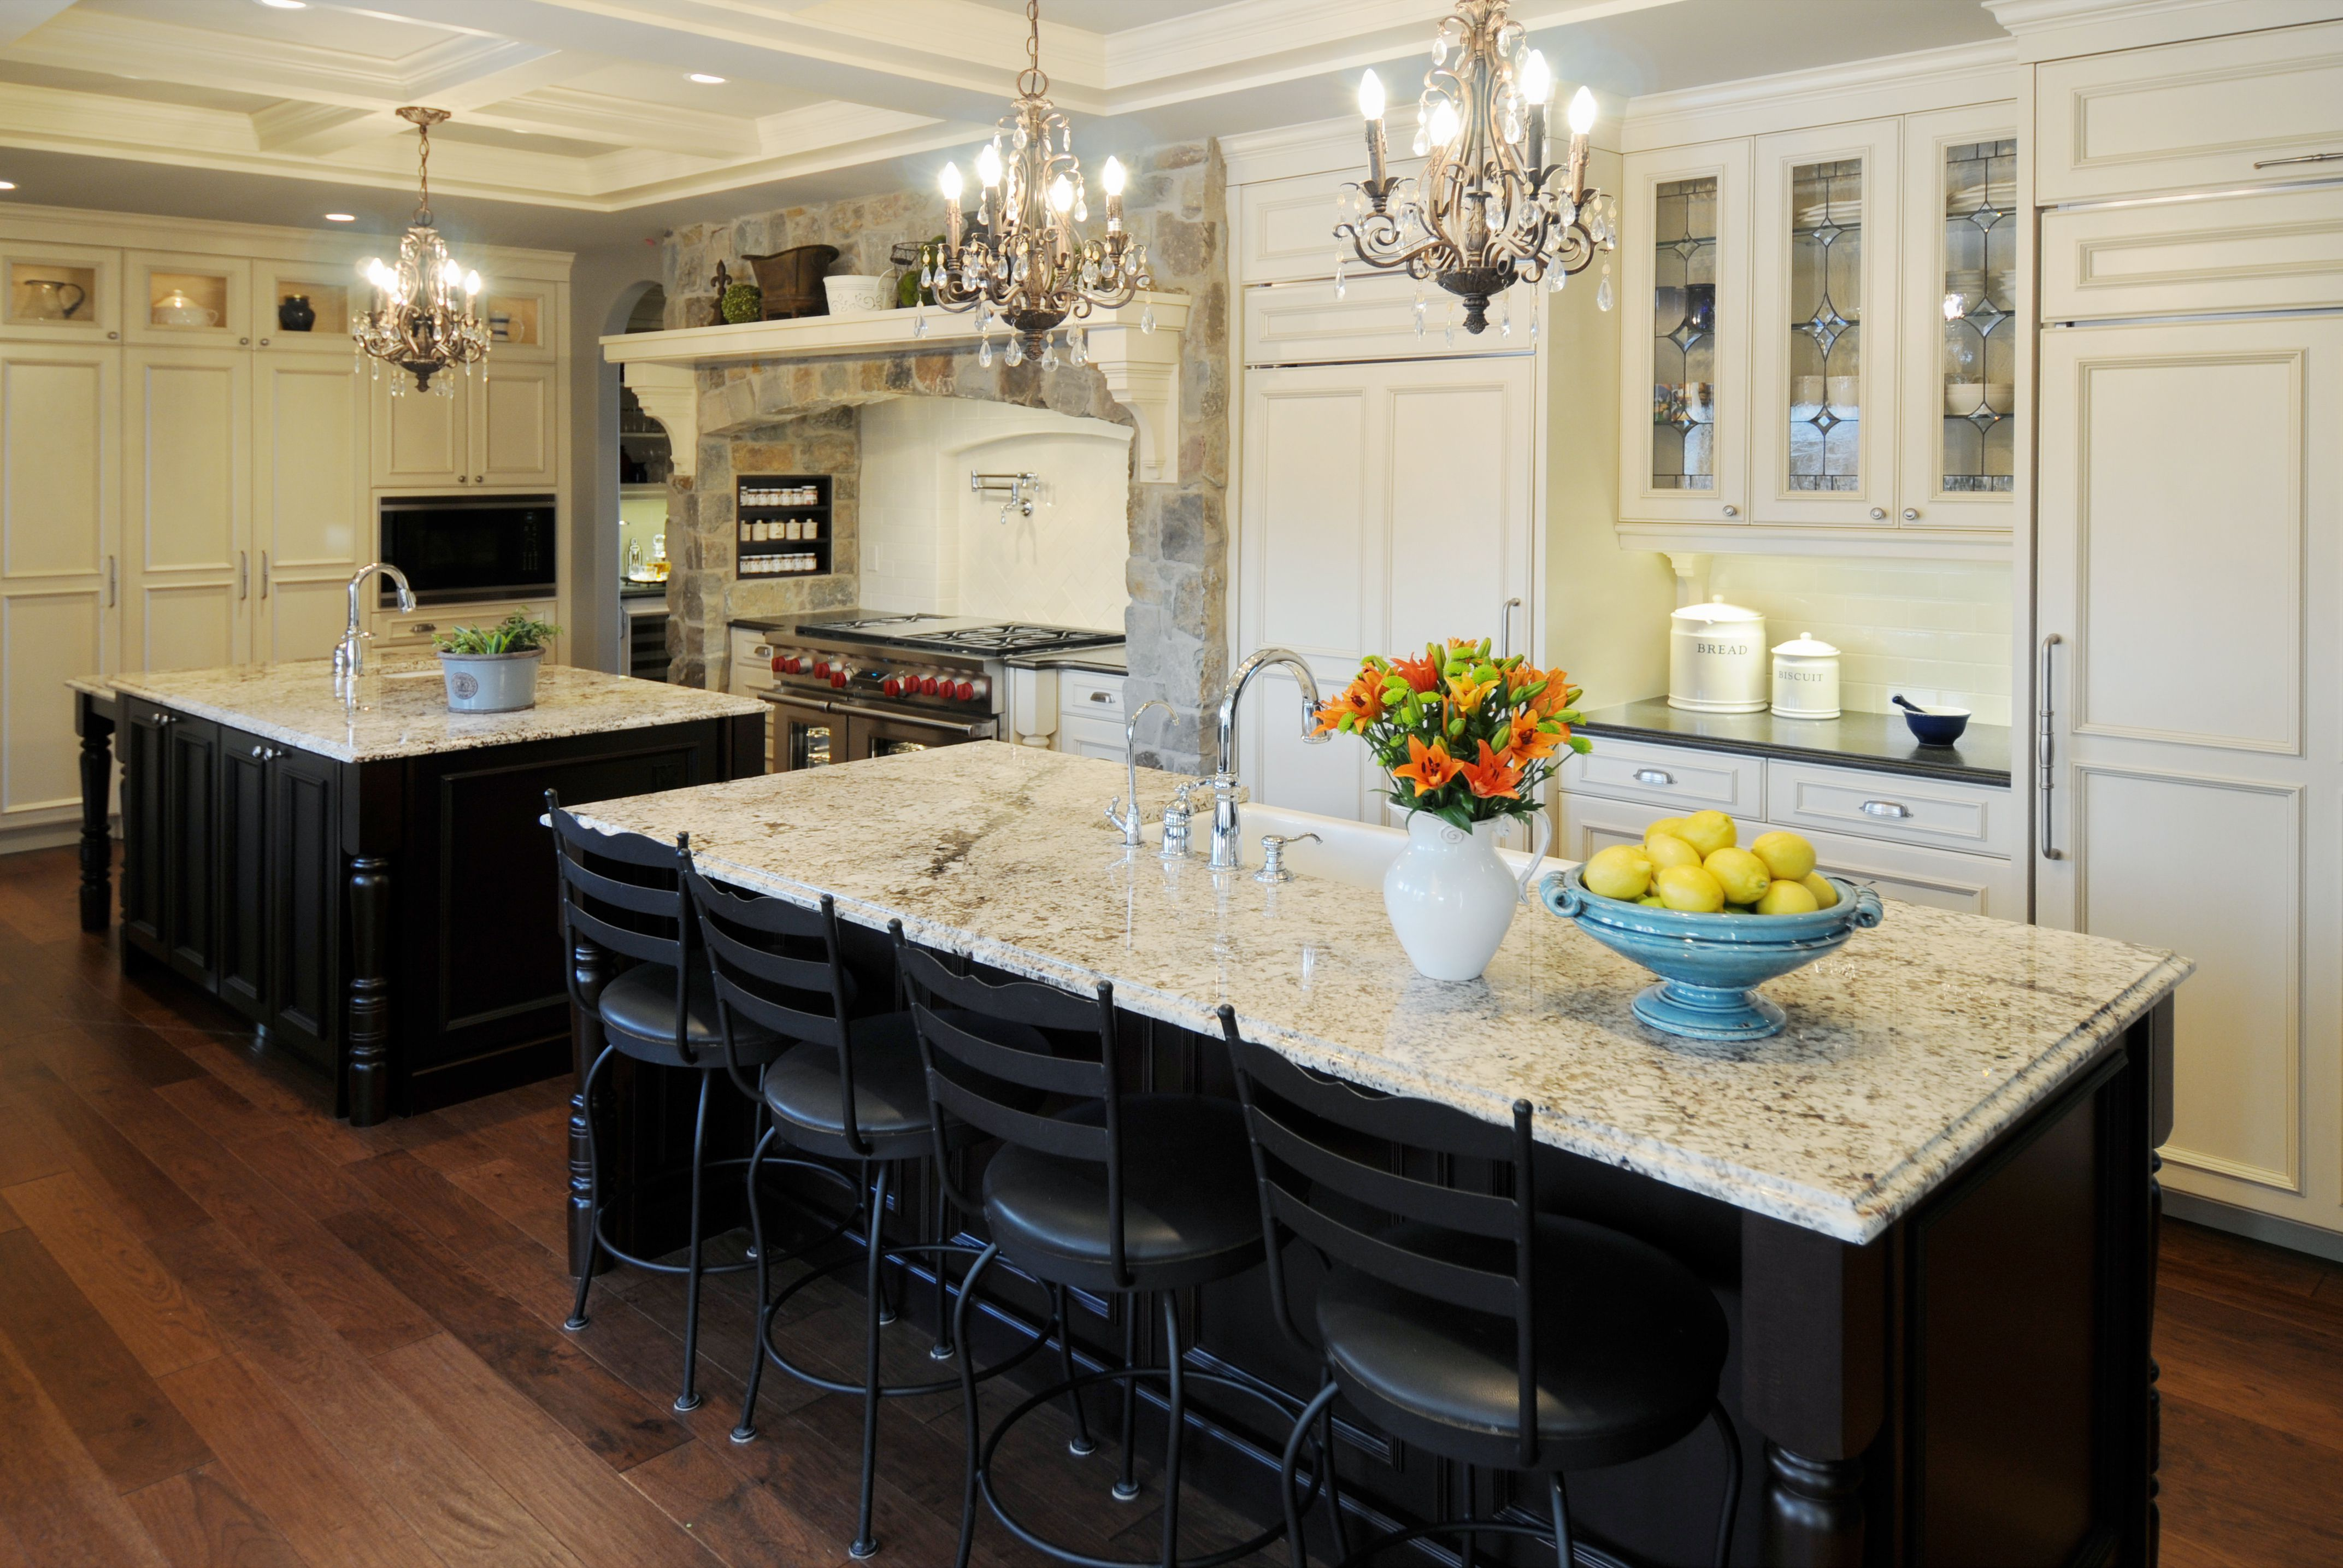 Choose Dark Stools for Classic Kitchen Island Plans under Crystal Chandeliers near White Cabinets